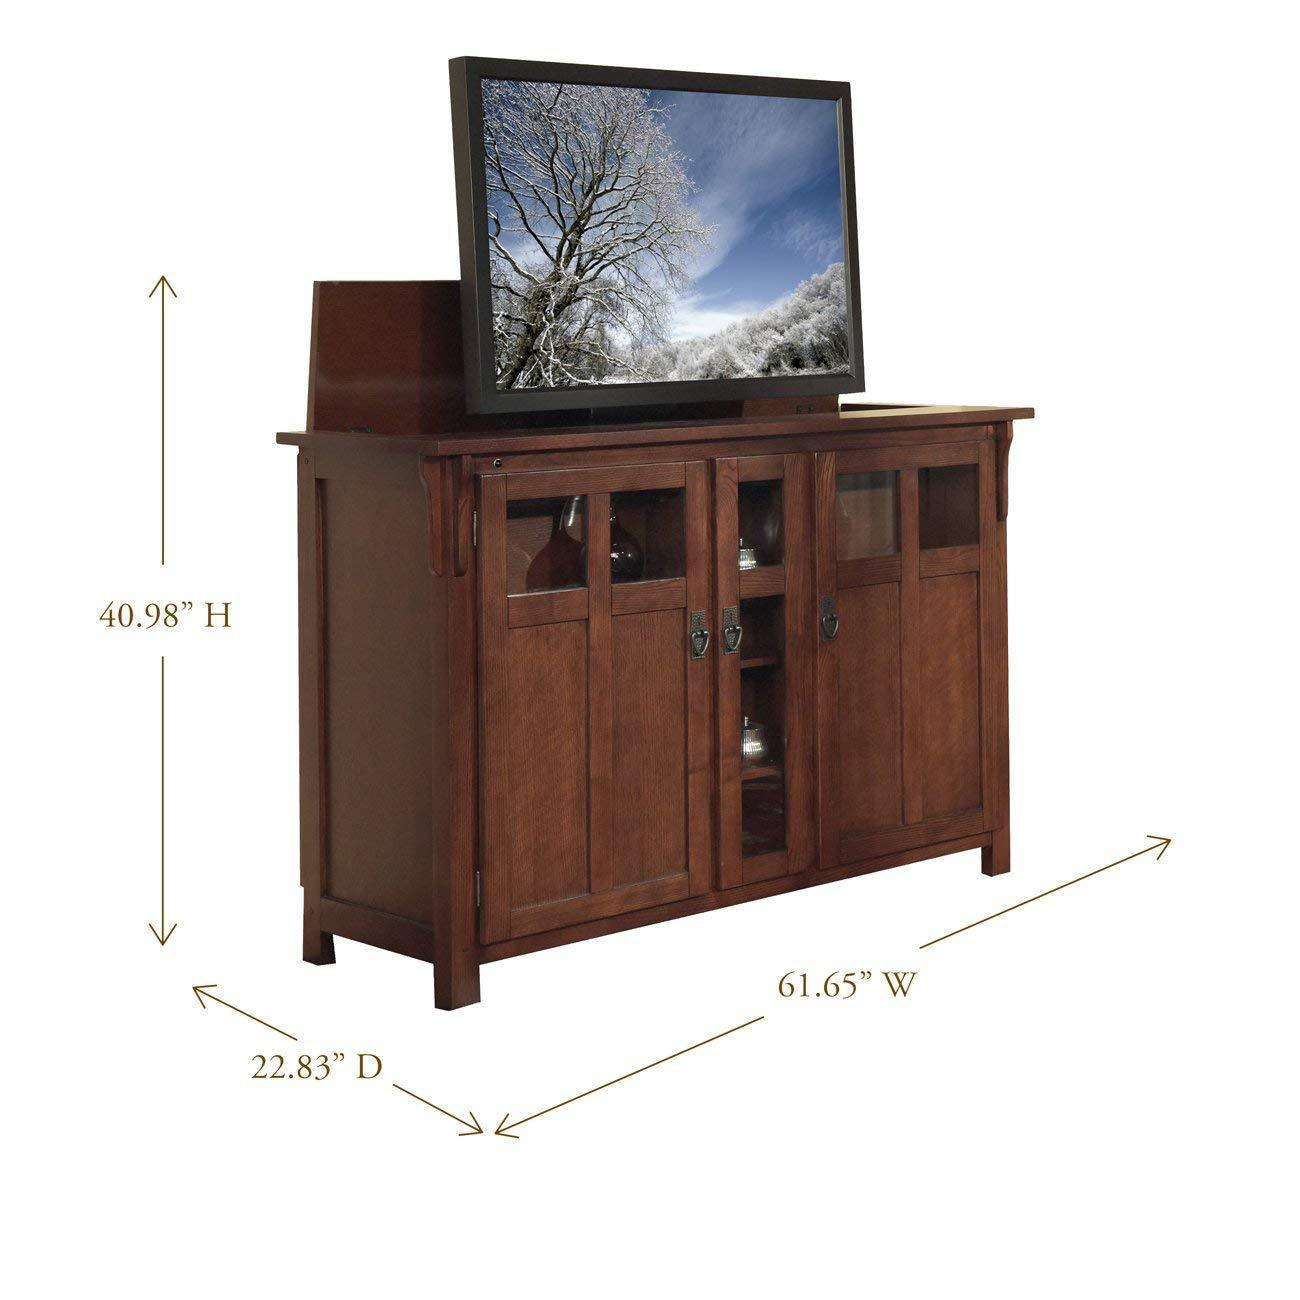 Get touchstone 70062 bungalow tv lift cabinet chestnut oak up to 60 inch tvs diagonal 55 in wide mission style motorized tv cabinet pop up tv cabinet with memory feature ir rf 12v trigger